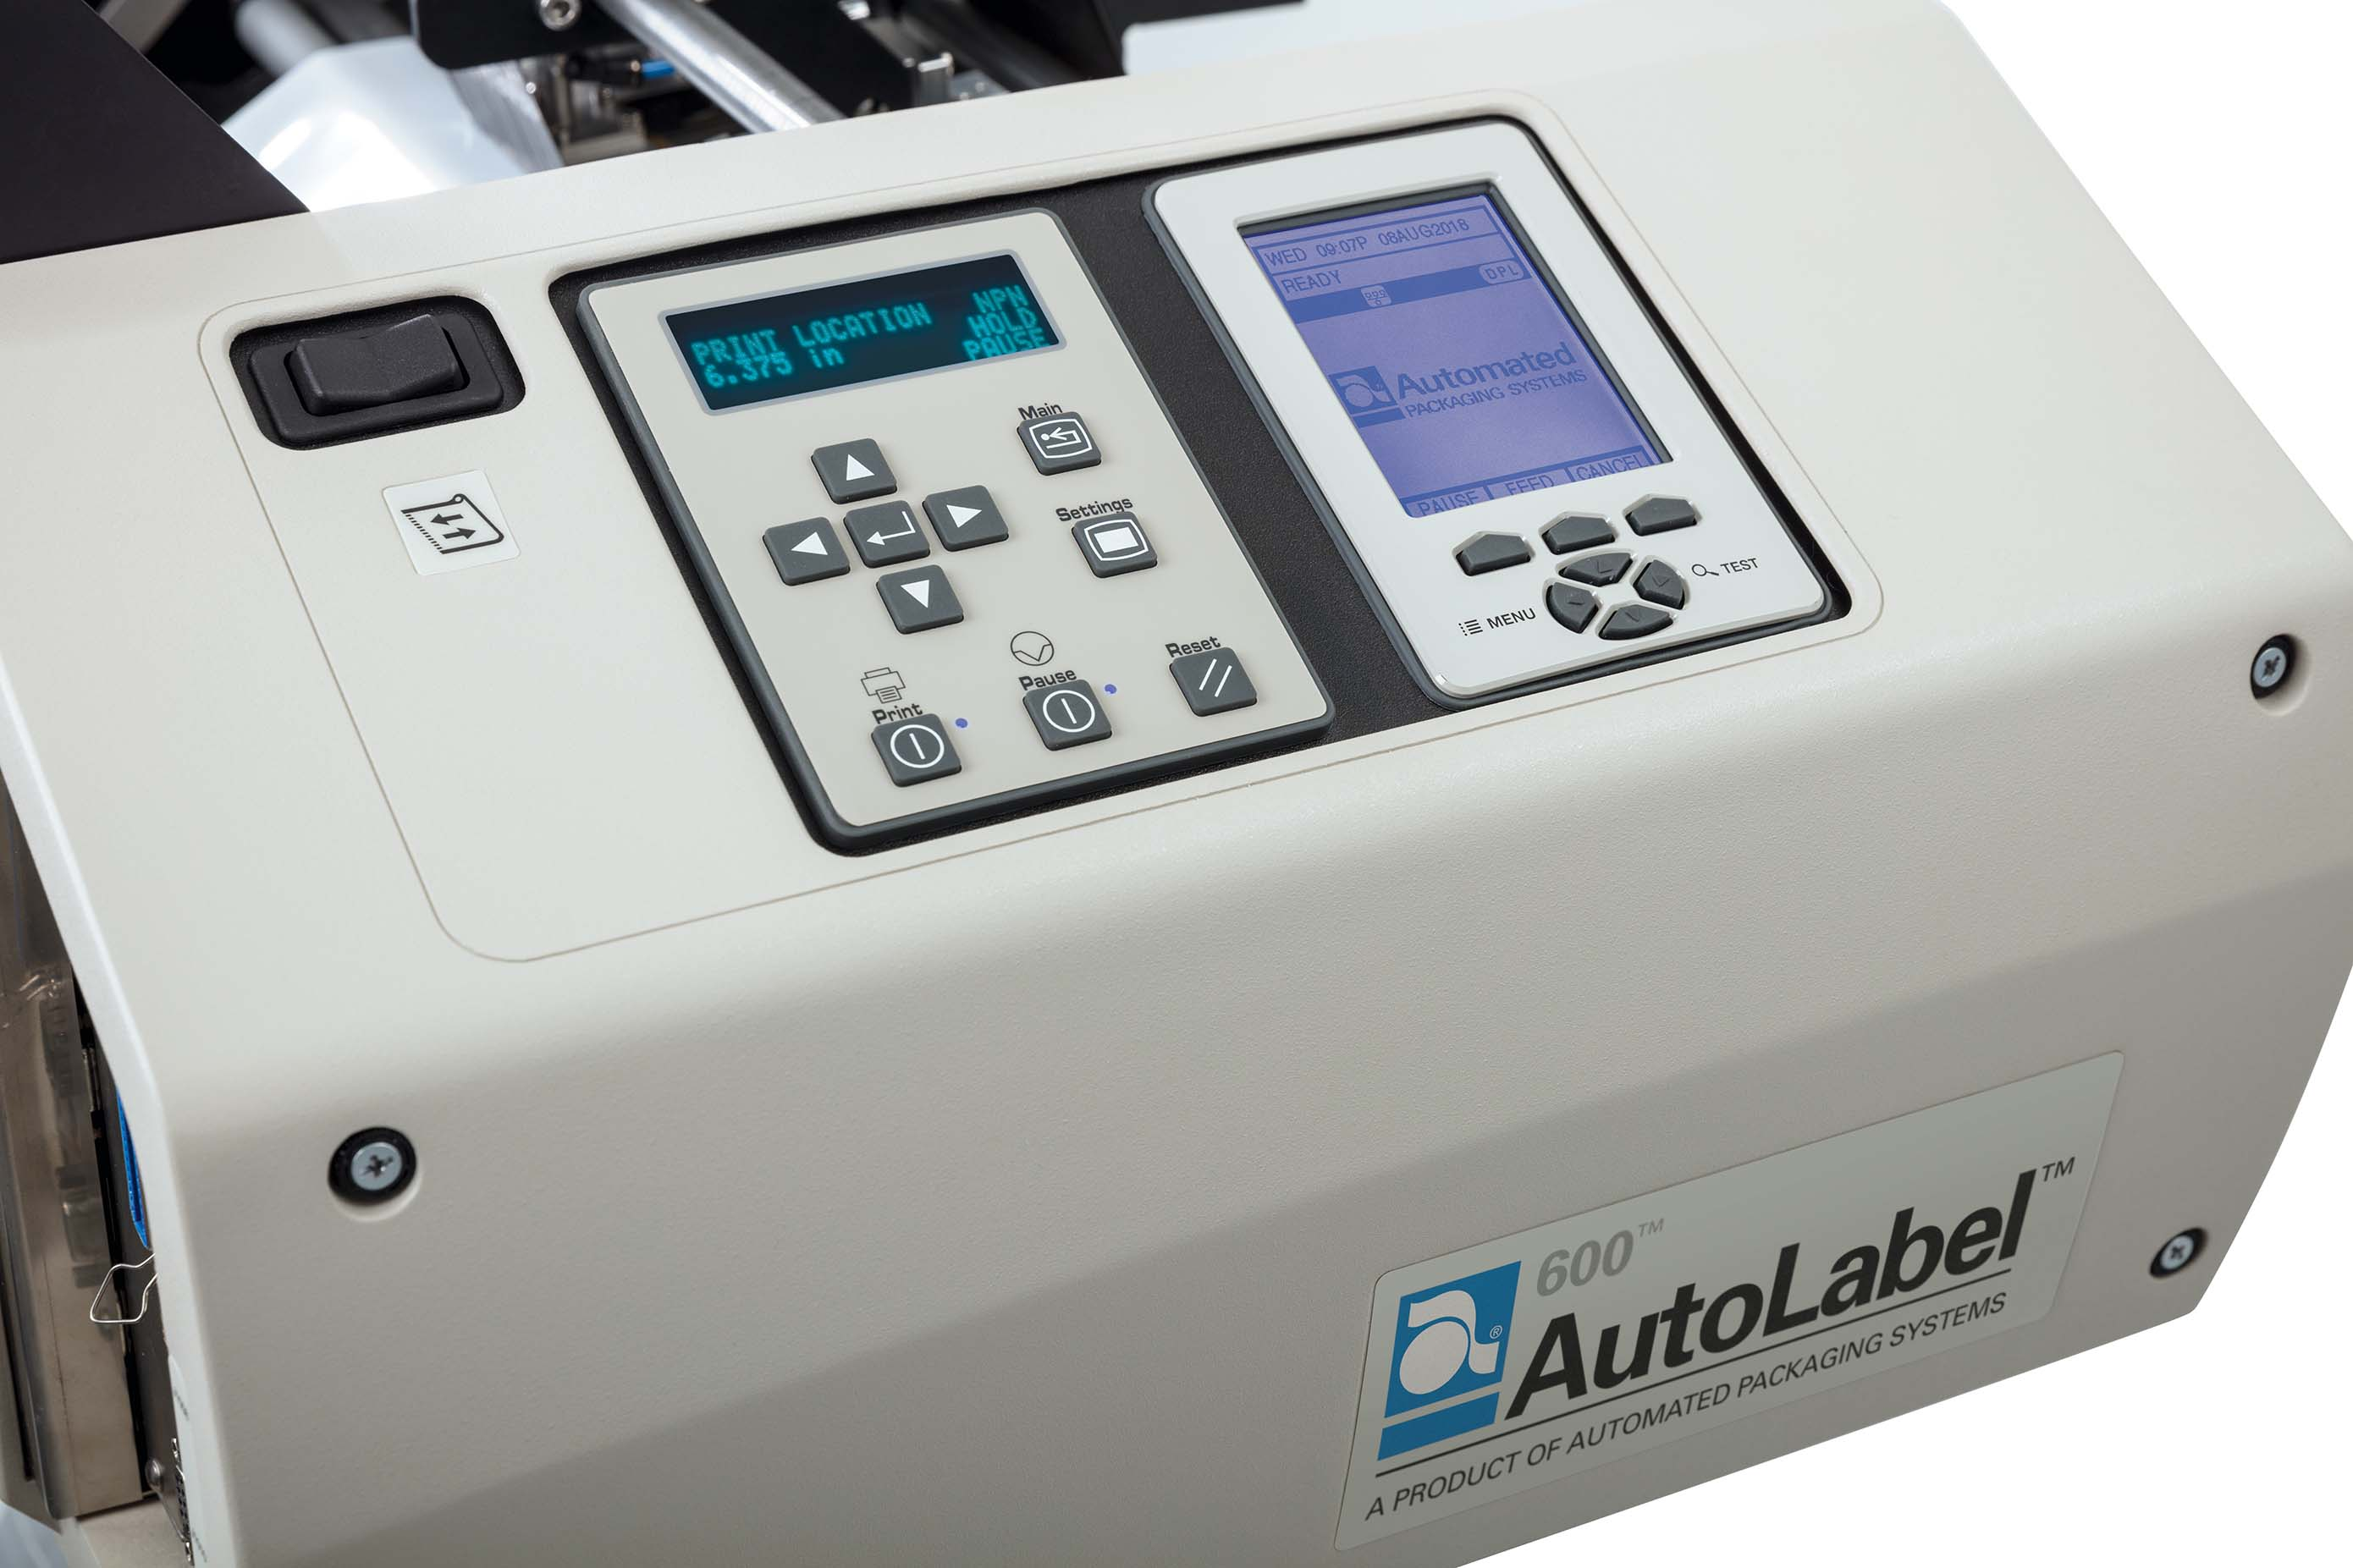 AutoLabel 600 Wide Printer Control Panel